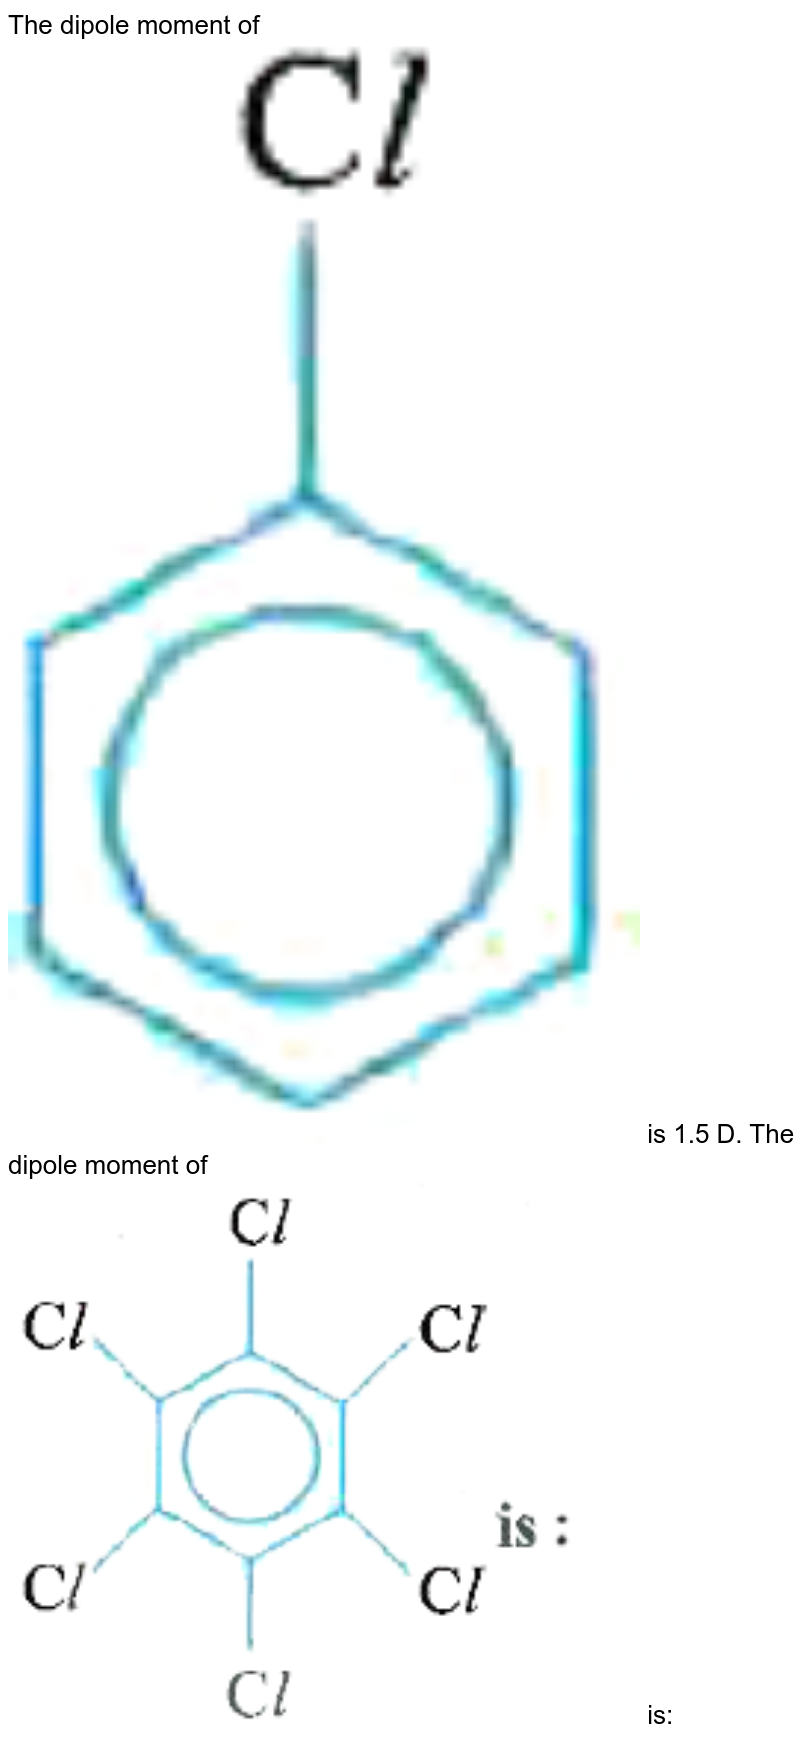 """The dipole moment of <img src=""""https://d10lpgp6xz60nq.cloudfront.net/physics_images/NAR_NEET_CHE_XI_P1_C04_E09_010_Q01.png"""" width=""""80%""""> is 1.5 D. The dipole moment of <img src=""""https://d10lpgp6xz60nq.cloudfront.net/physics_images/NAR_NEET_CHE_XI_P1_C04_E09_010_Q02.png"""" width=""""80%""""> is:"""